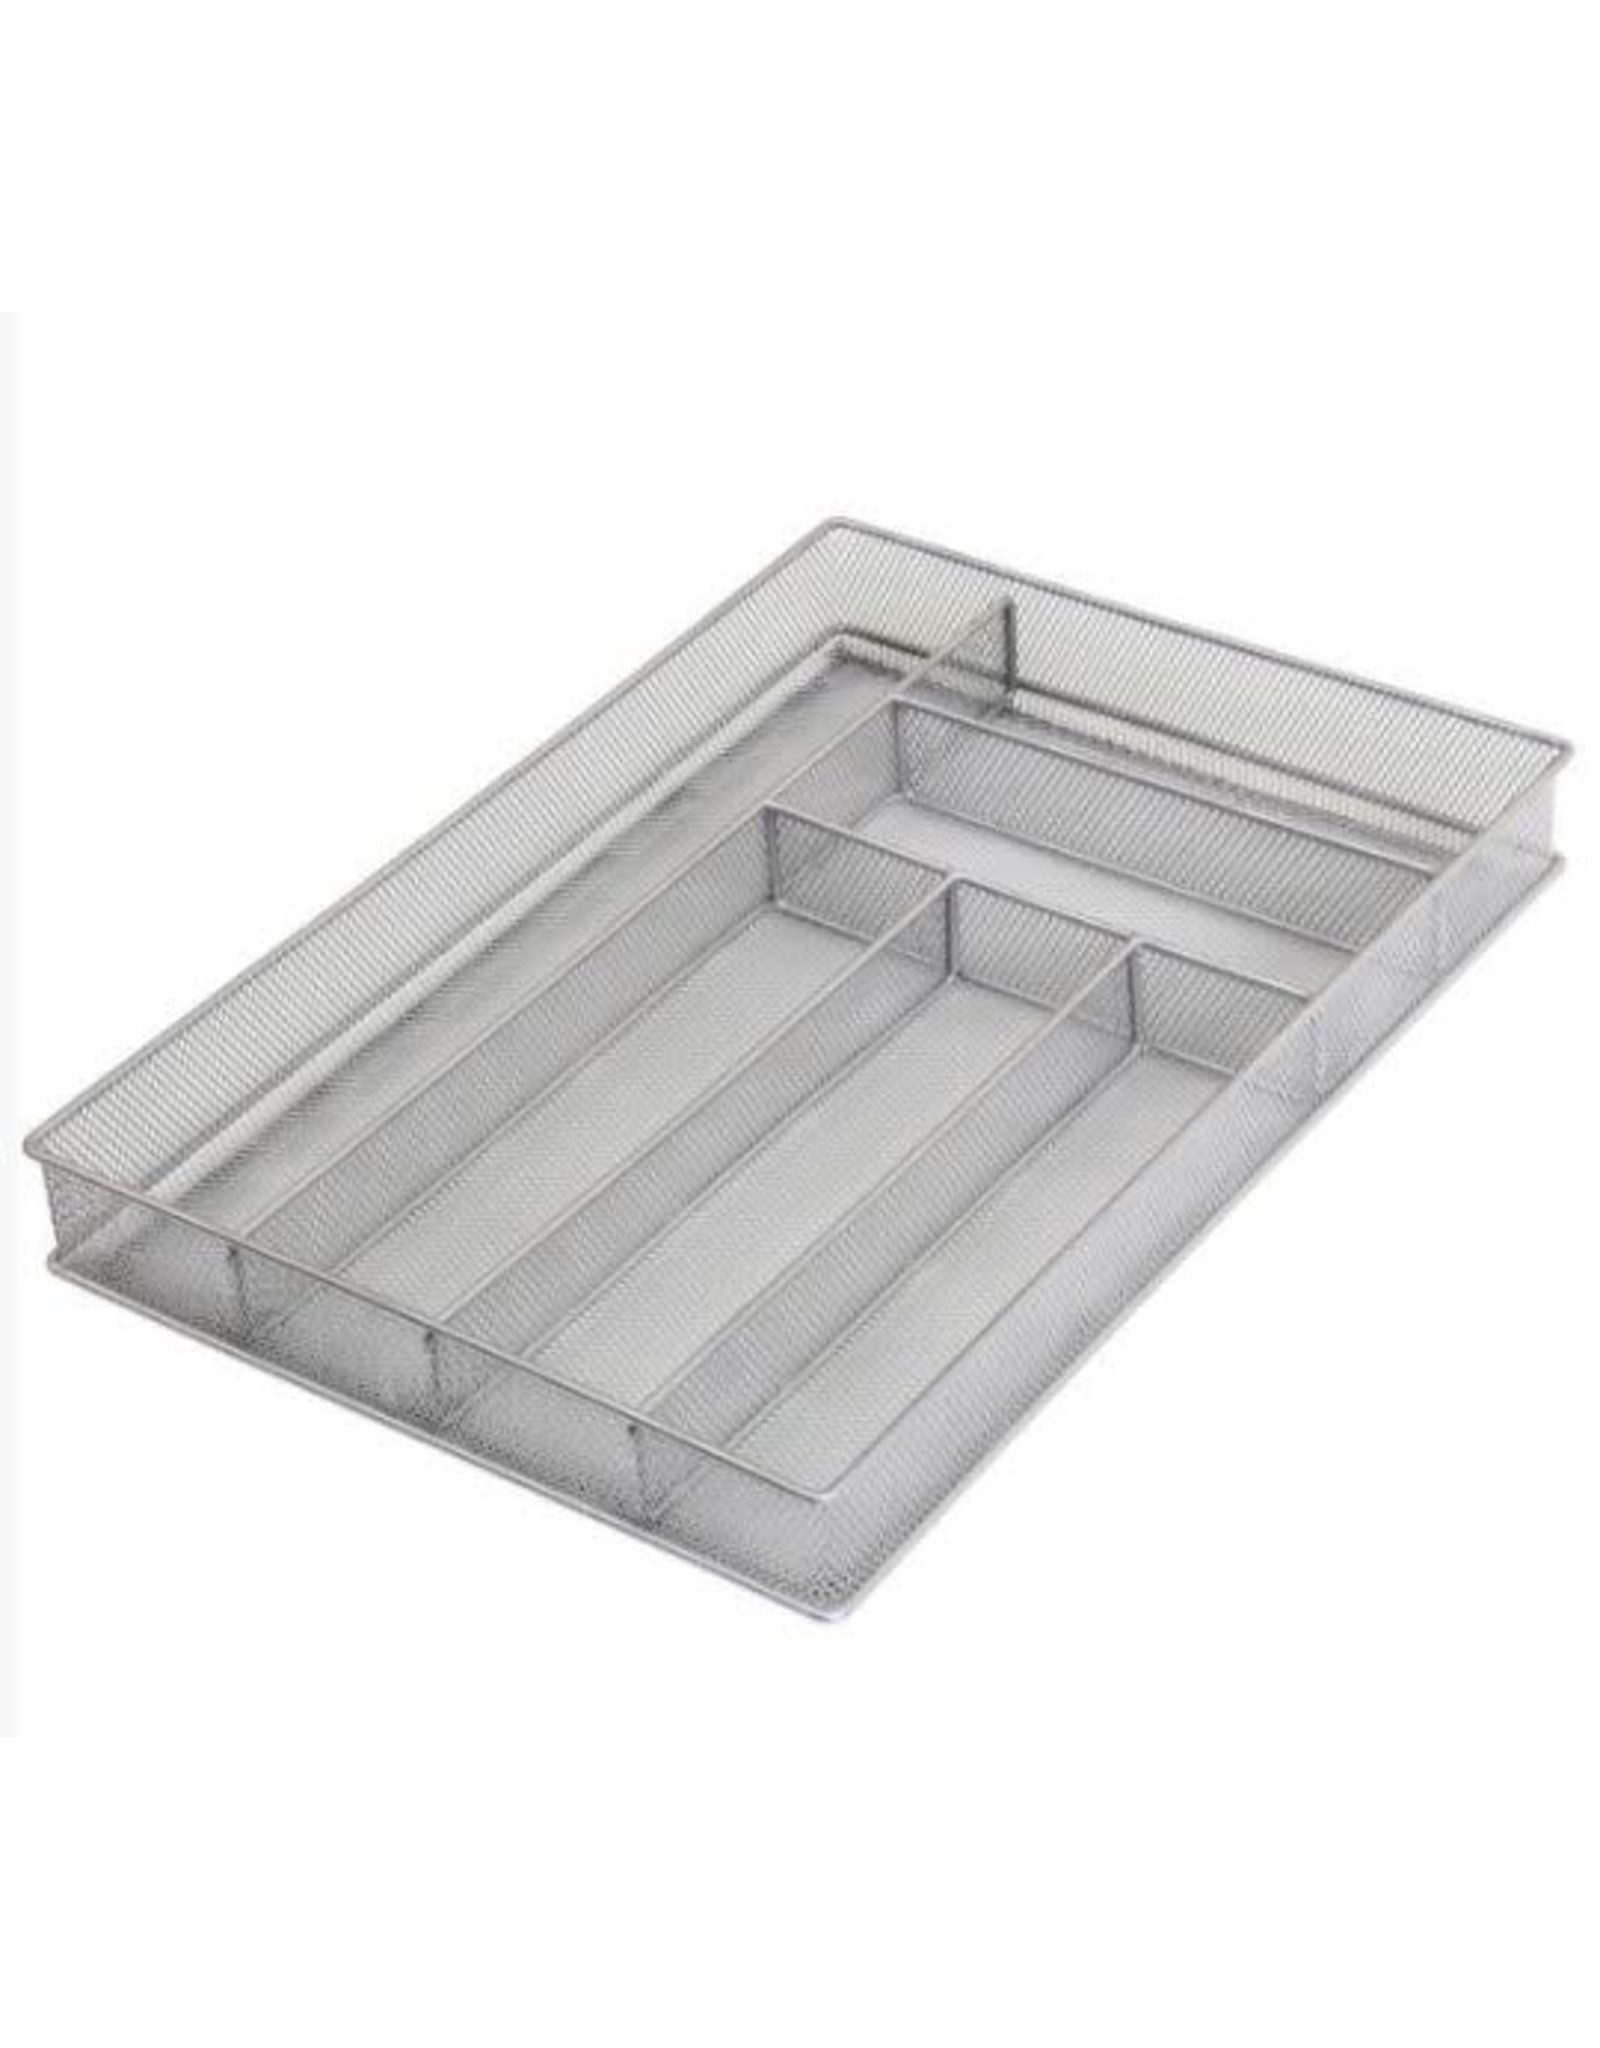 6-part In-drawer Organizer/tray Mesh Large (16 By 11-1/4 By 2 Inches) #1132